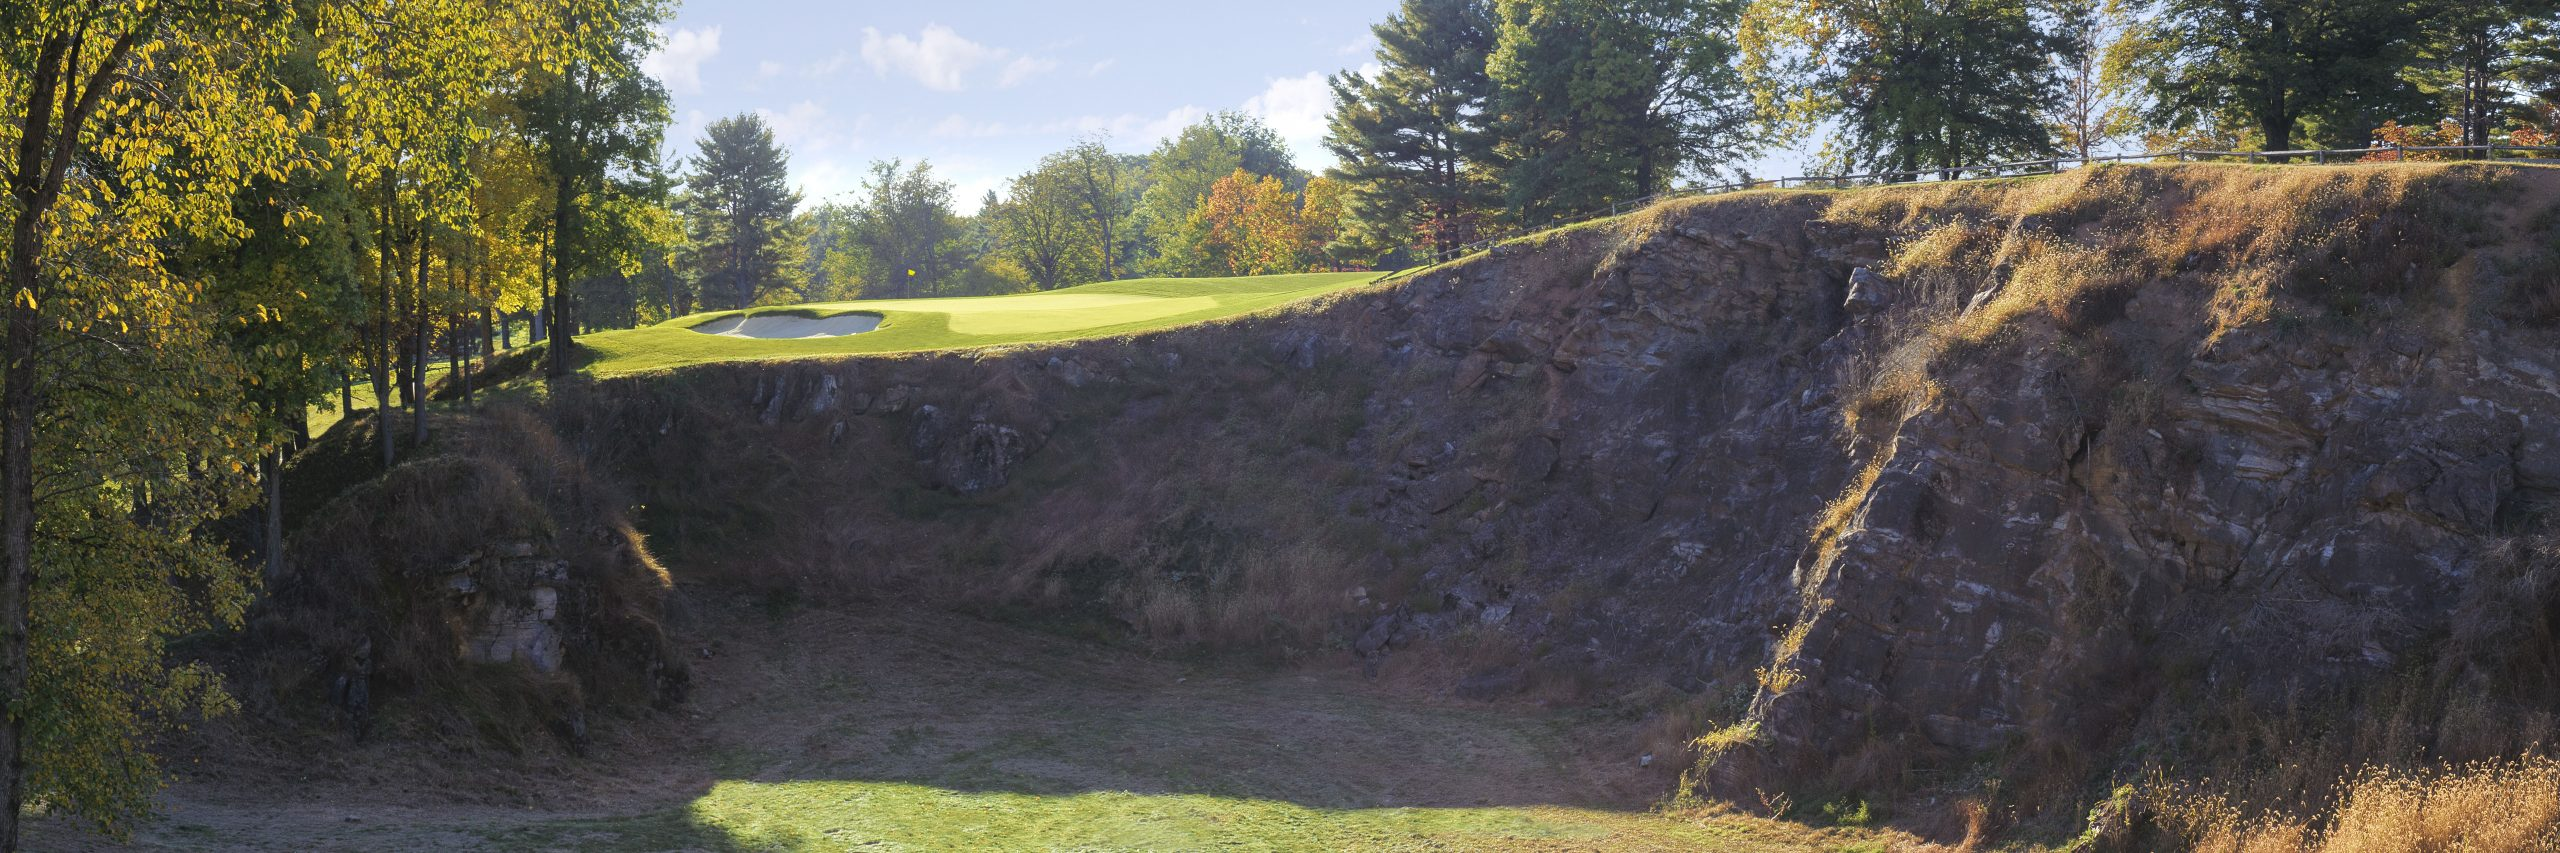 Golf Course Image - Saucon Valley Weyhill No. 14 (Fall)